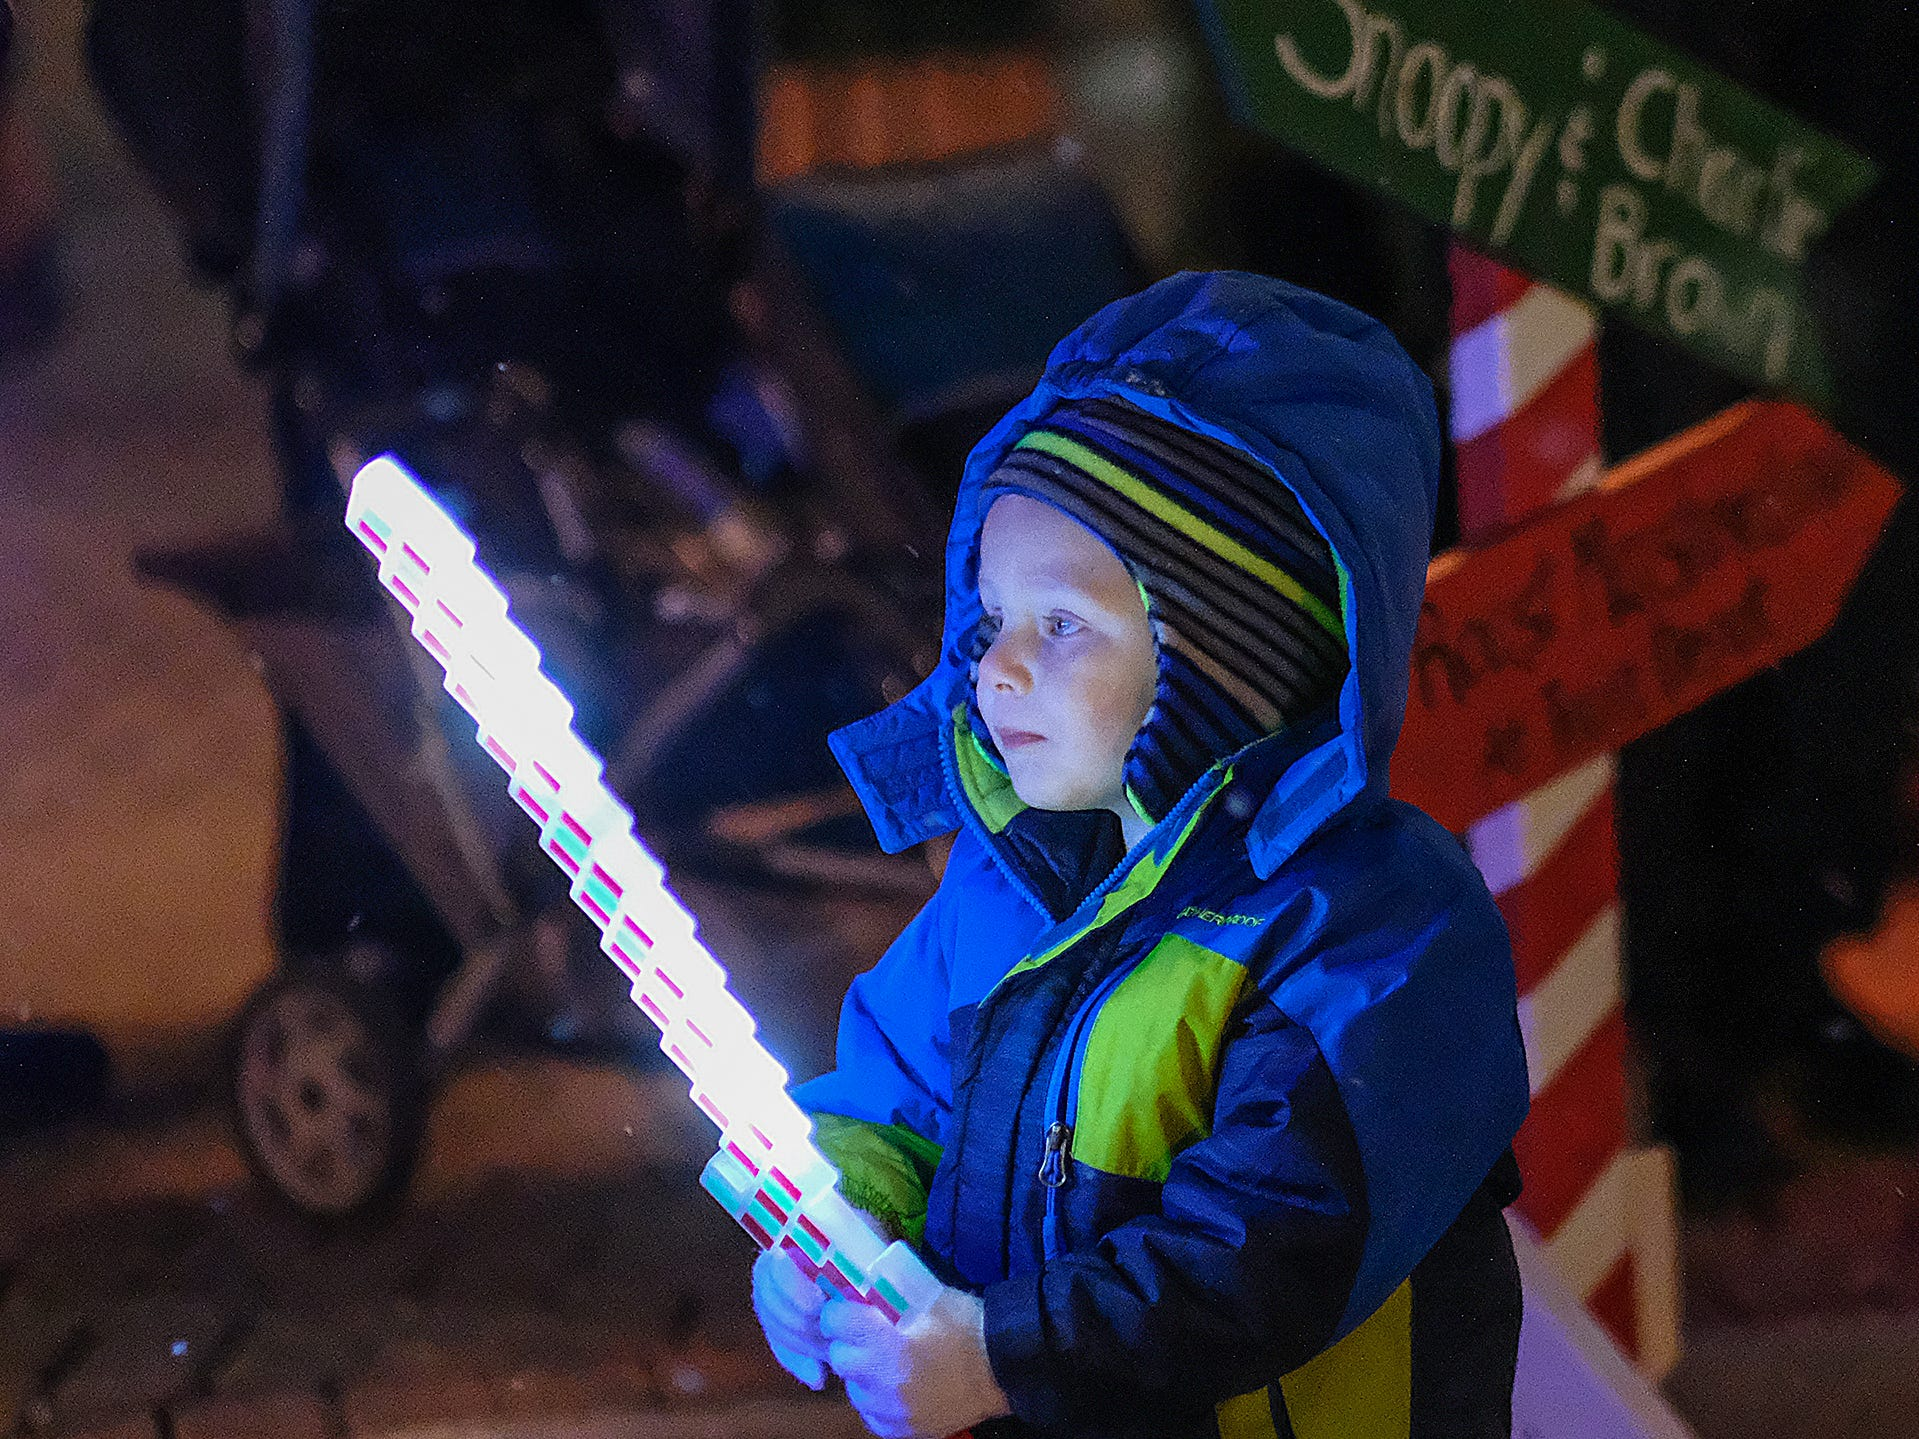 This youngster plays with a lighted sword at the Annual Festival of Lights and Santa Parade in downtown St. Johns Friday, Dec, 7, 2018.